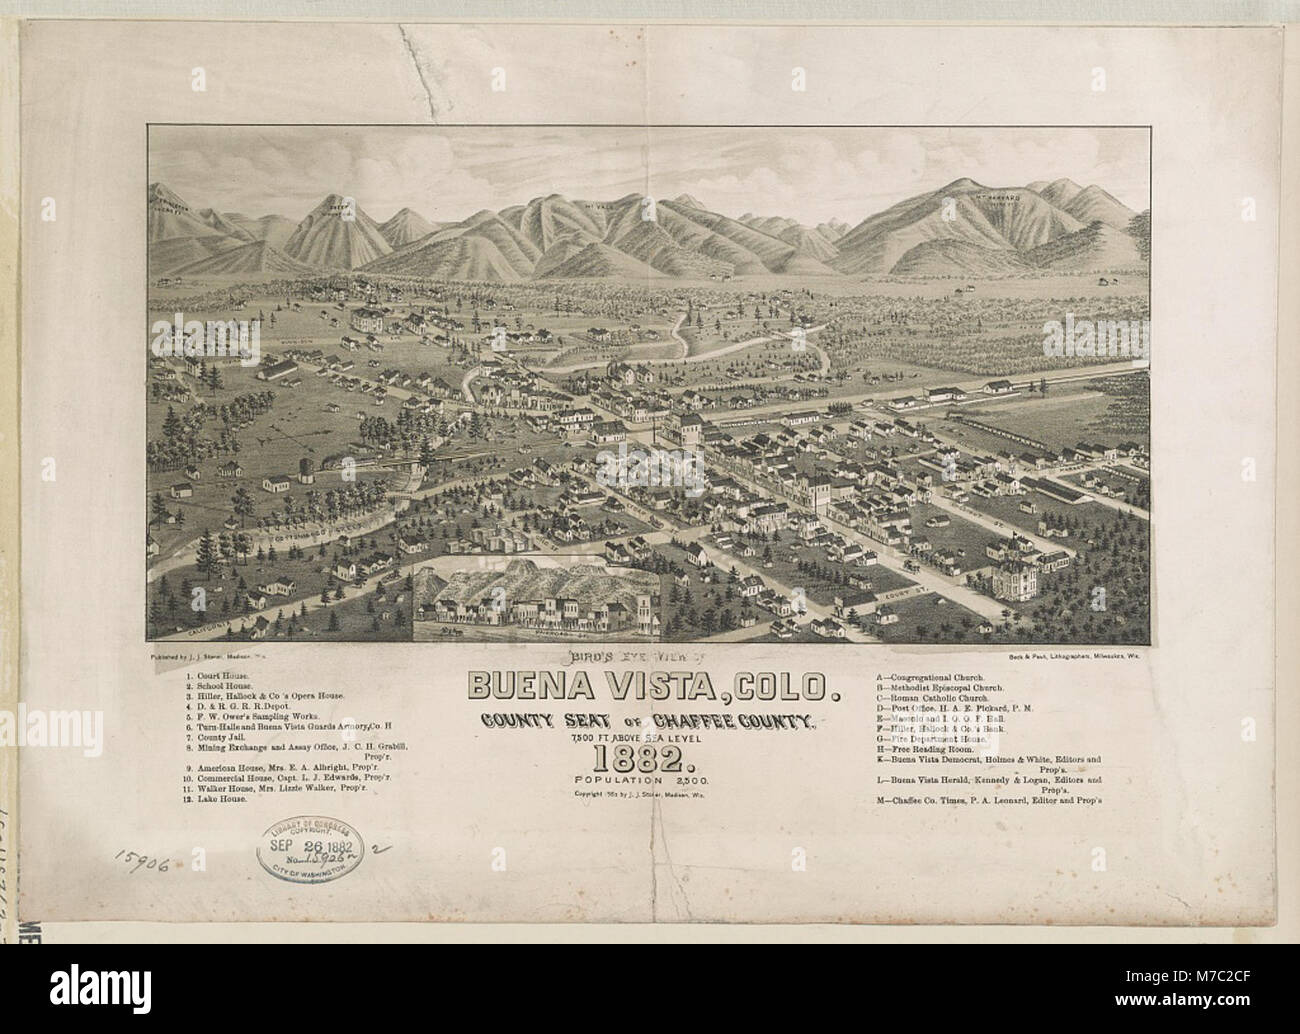 Bird's eye view of Buena Vista, Colo. County Seat of Chaffee County 1882 LCCN2003654954 - Stock Image